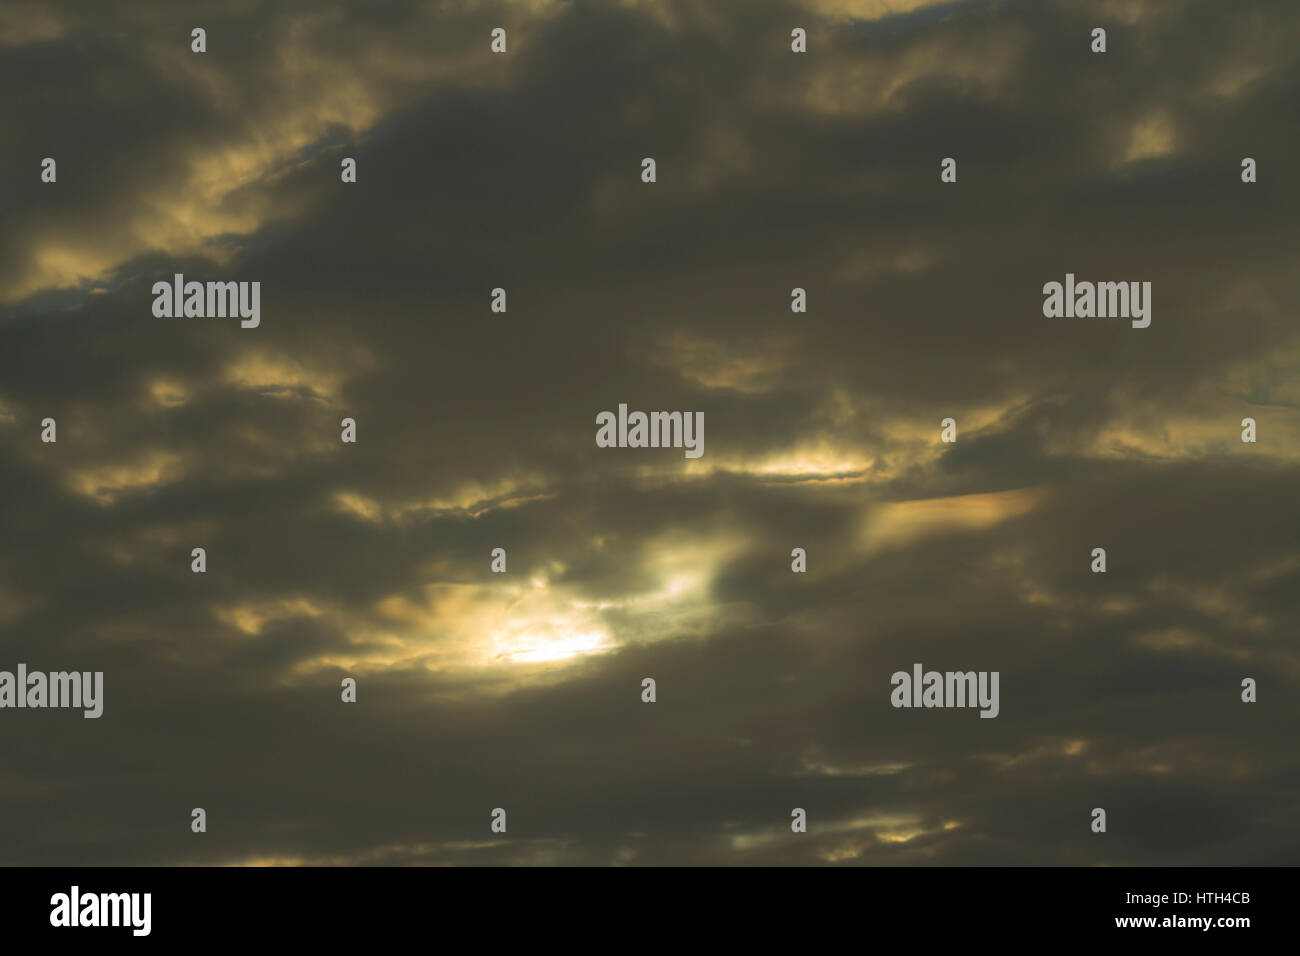 Dark clouds with the sun peeping through - Stock Image